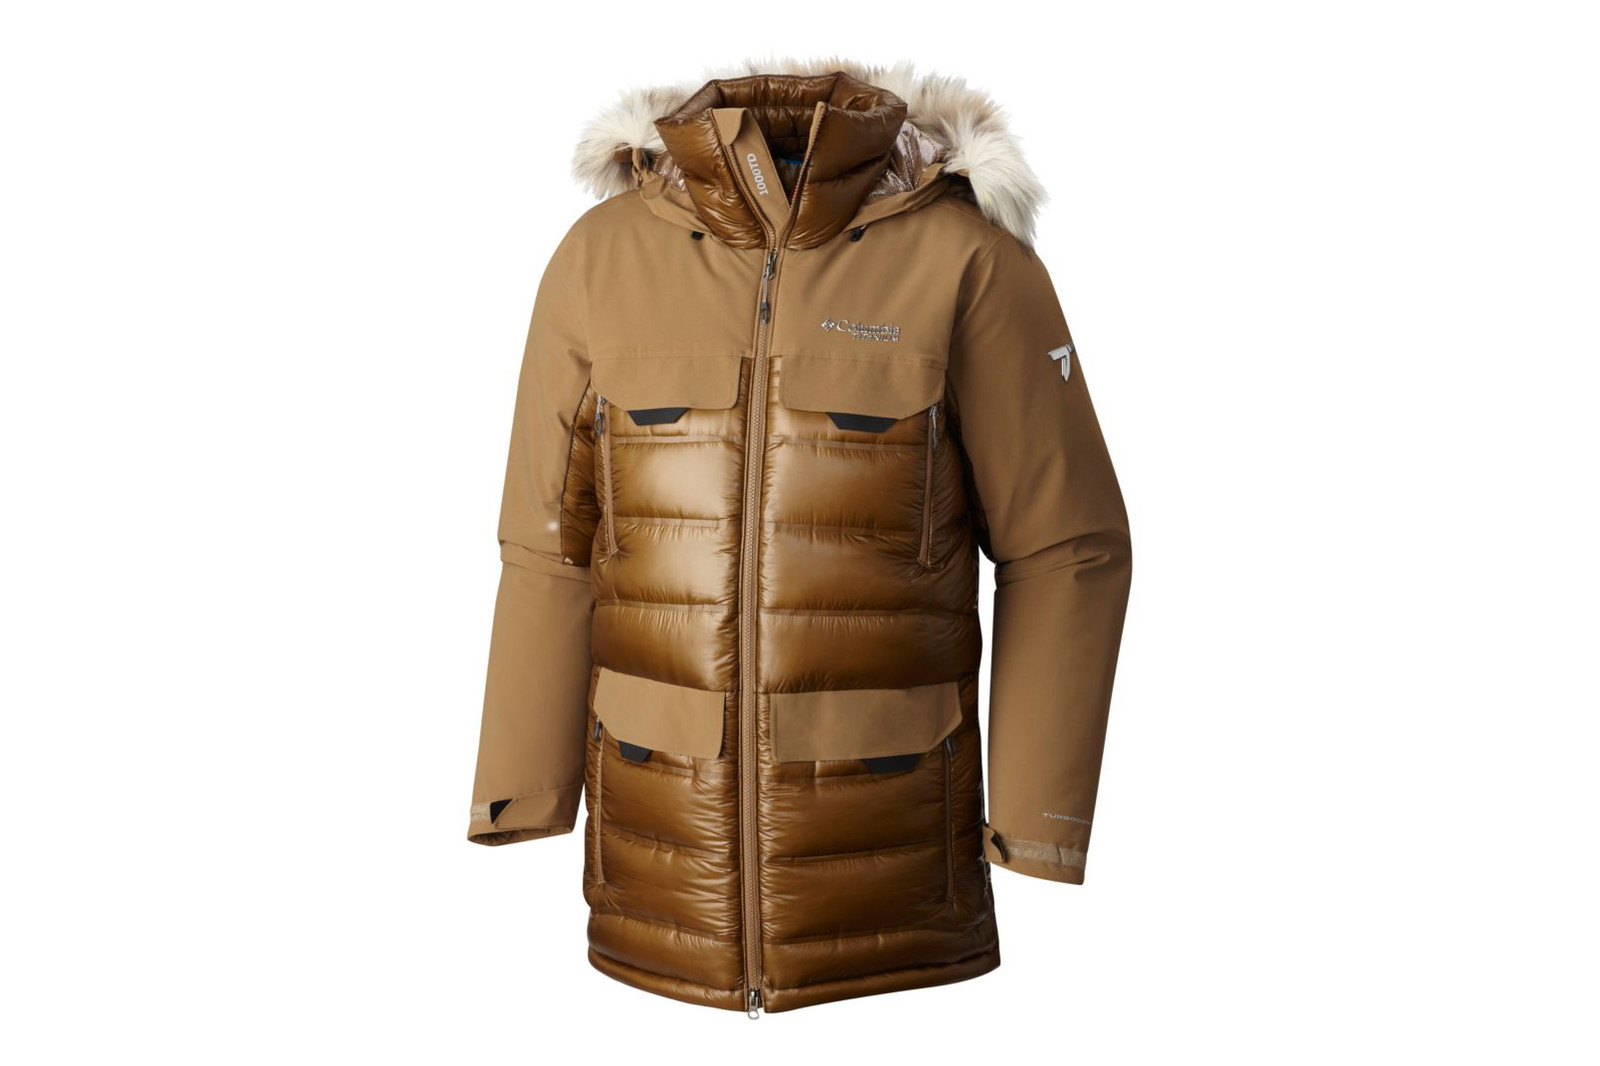 10 Extreme Cold Weather Winter Workwear Jackets Streetwear North Face Patagonia Columbia